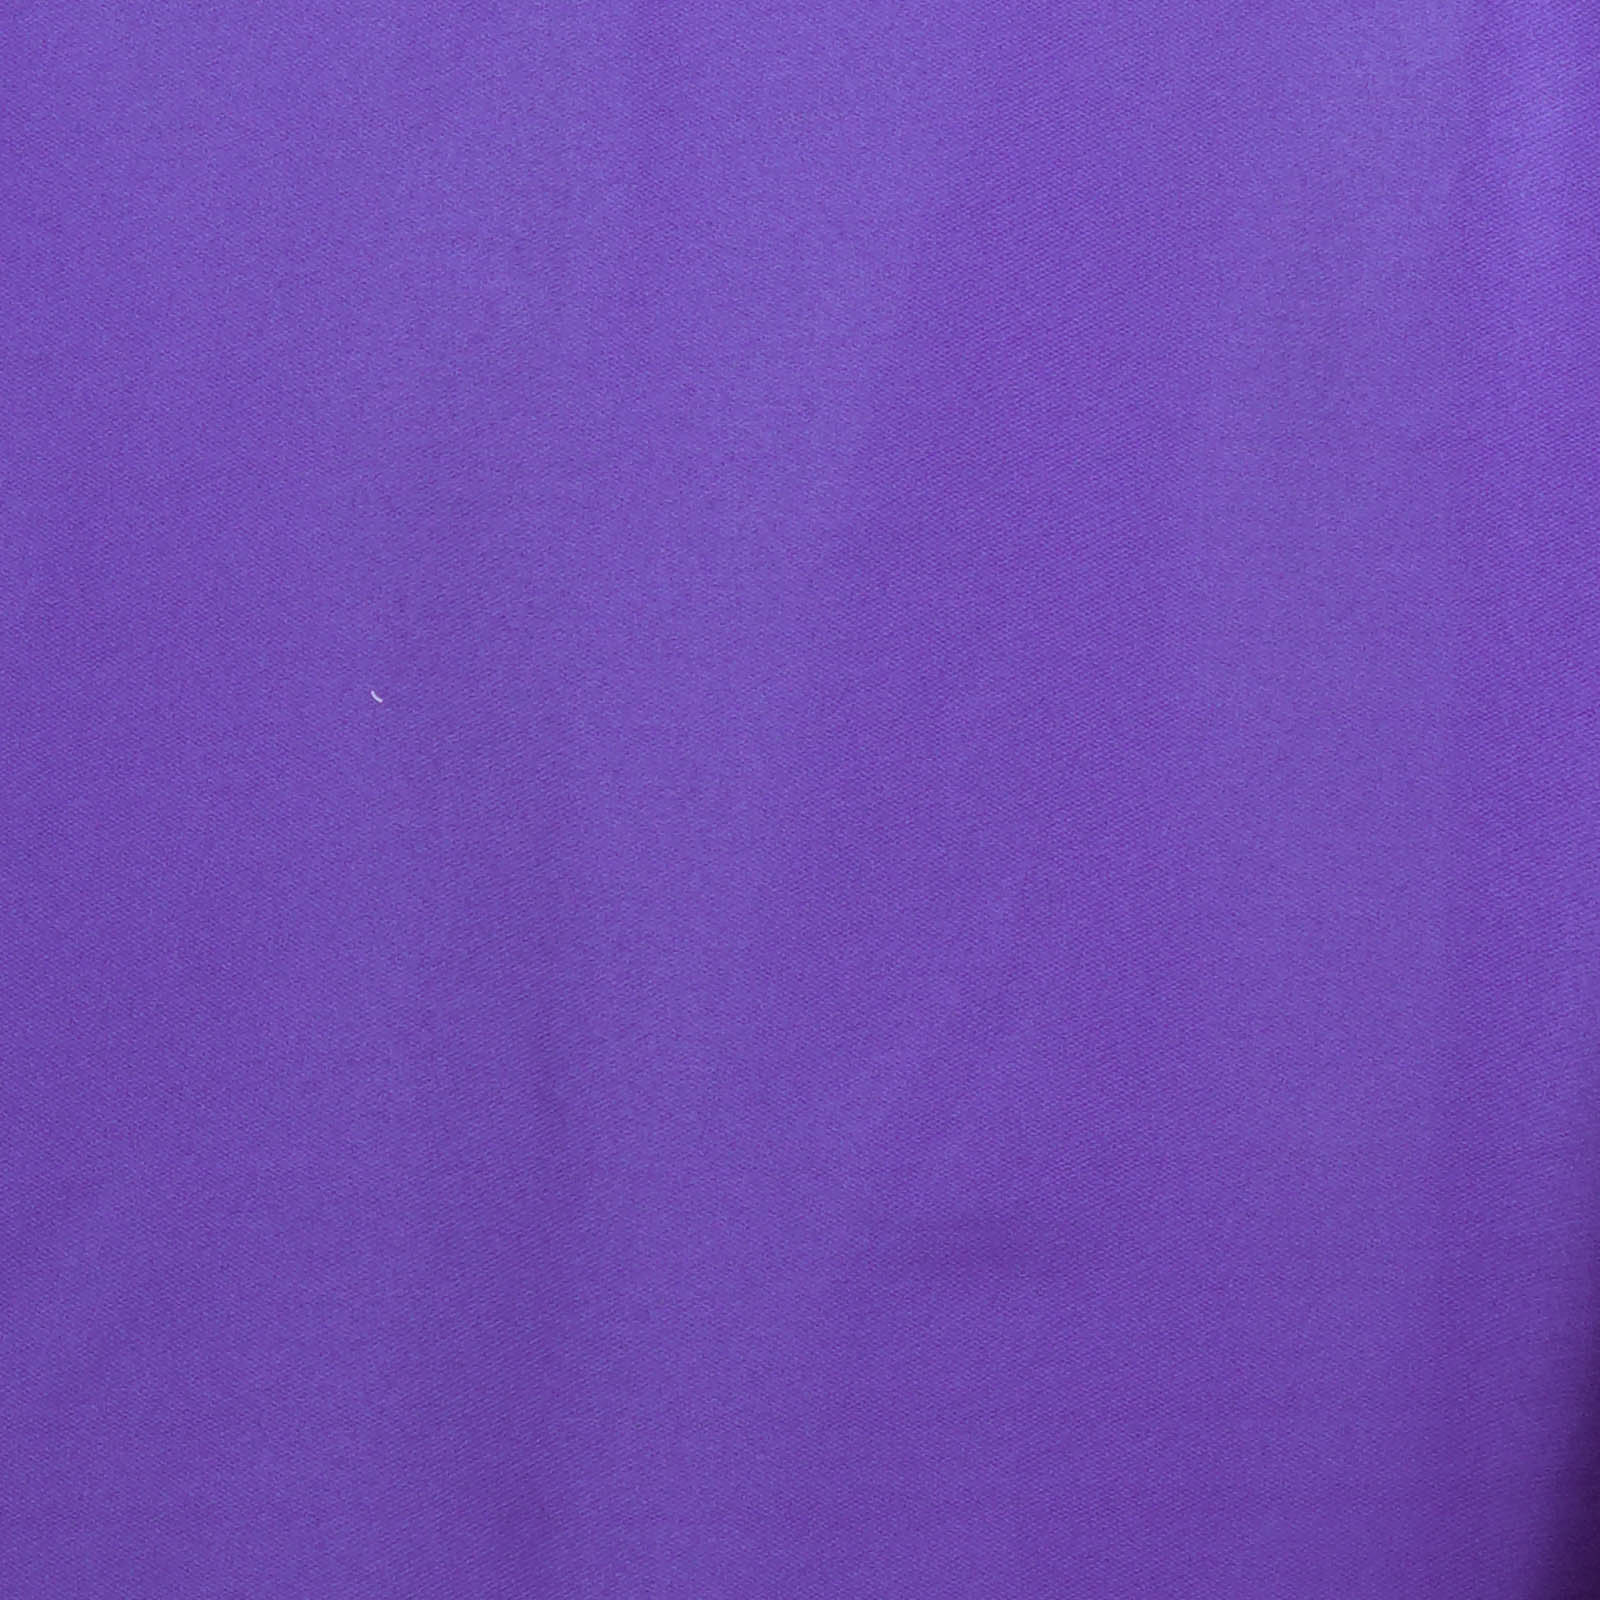 90x156-034-Polyester-Rectangle-Tablecloths-For-Wedding-Party-Banquet-Events thumbnail 39